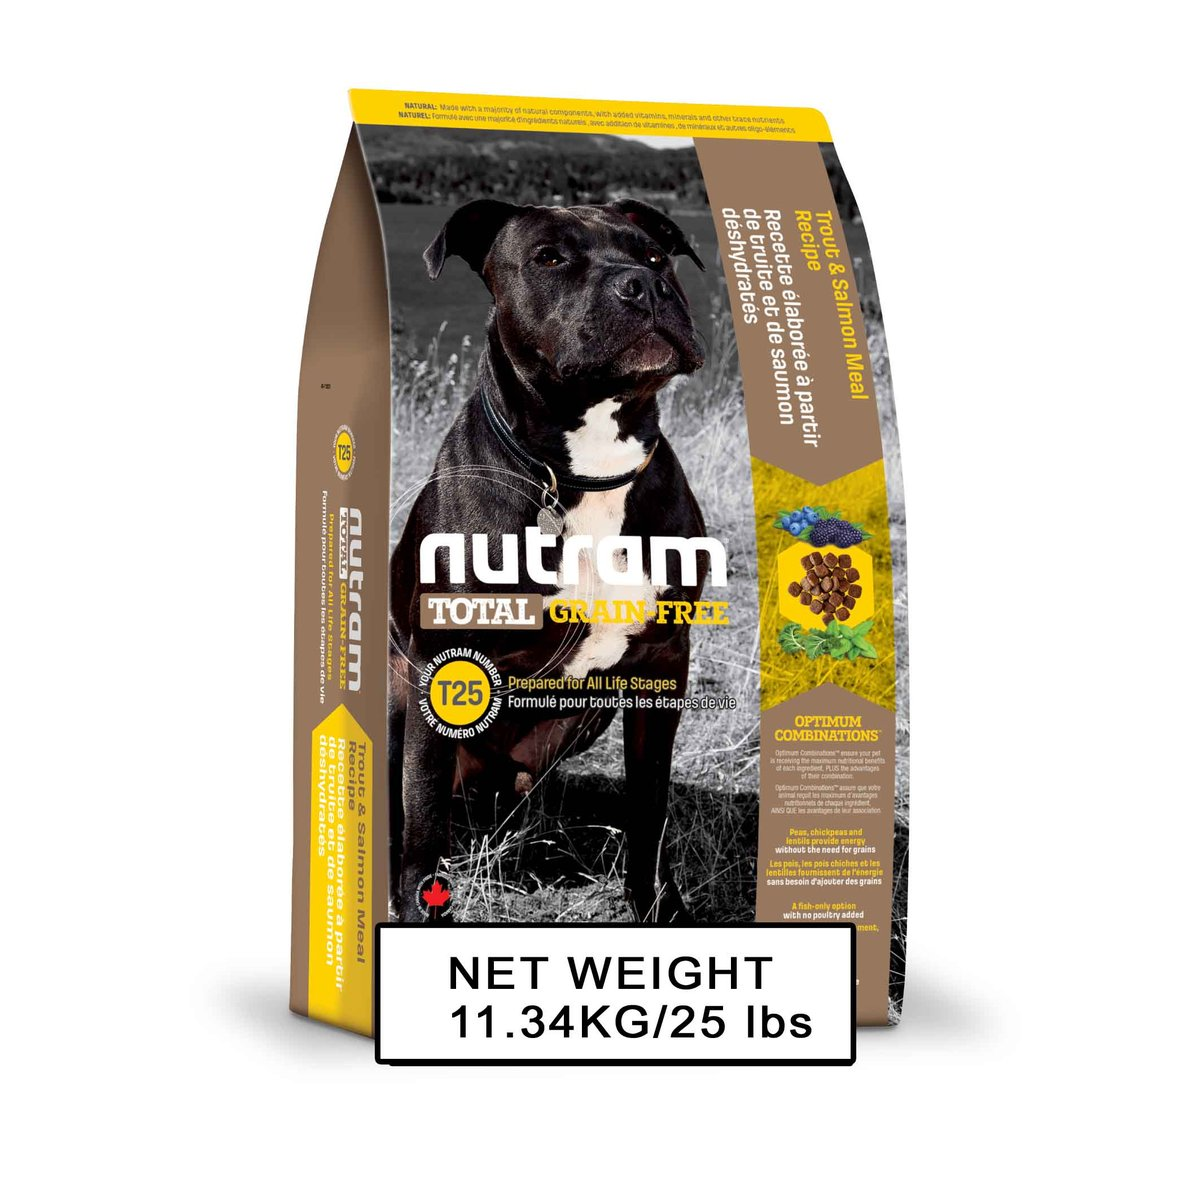 T25 Grain Free Salmon & Trout Dog Food 11.34kg